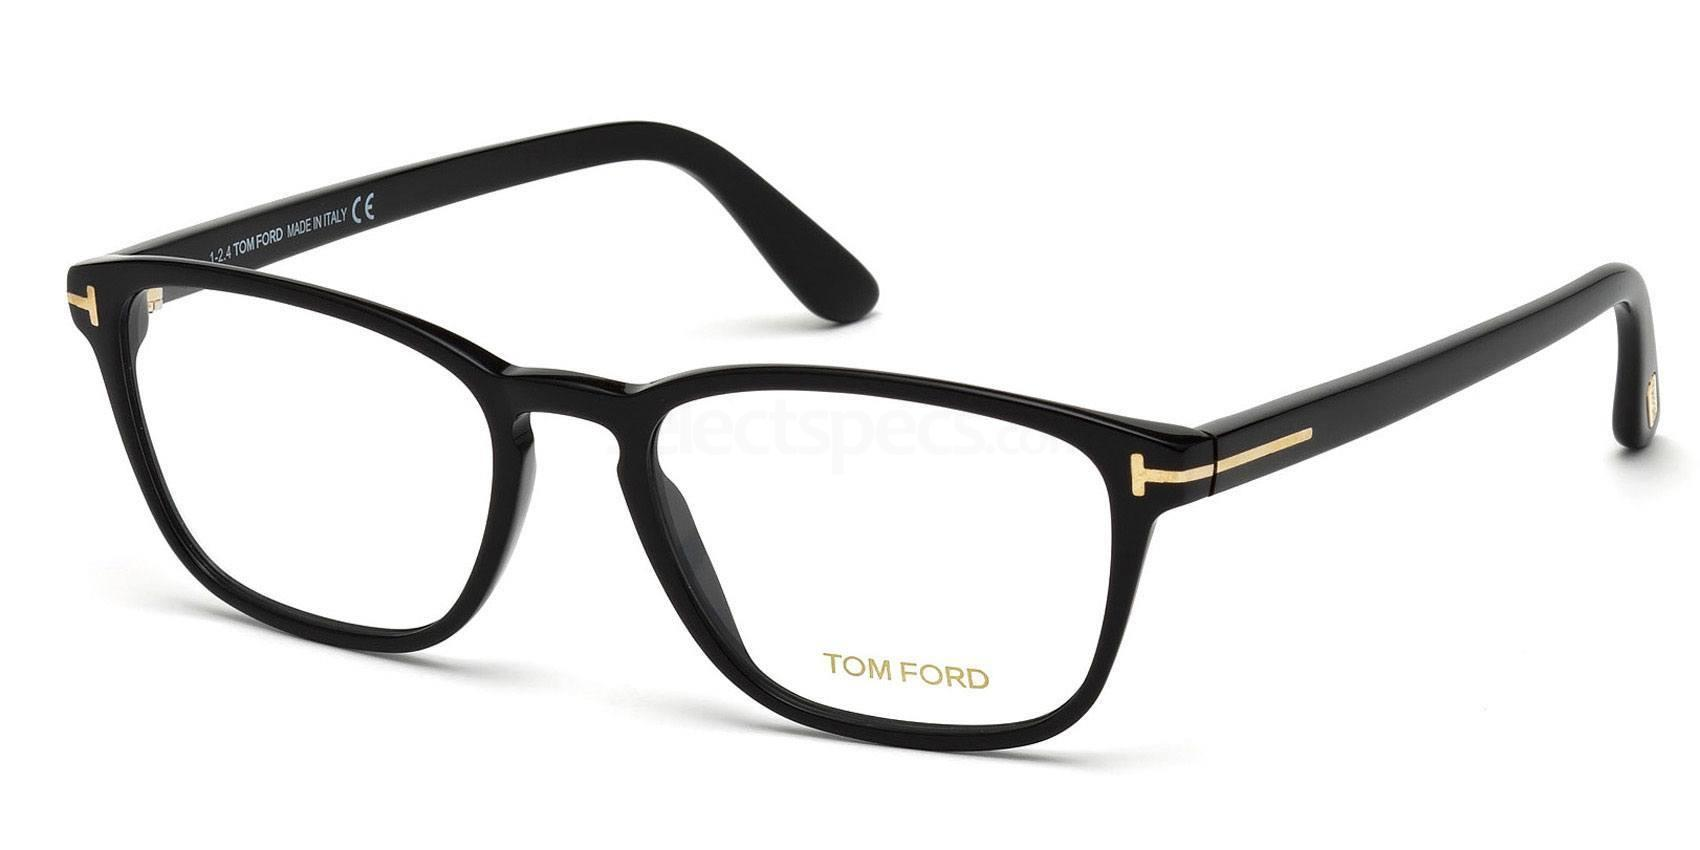 Tom Ford FT5355 glasses